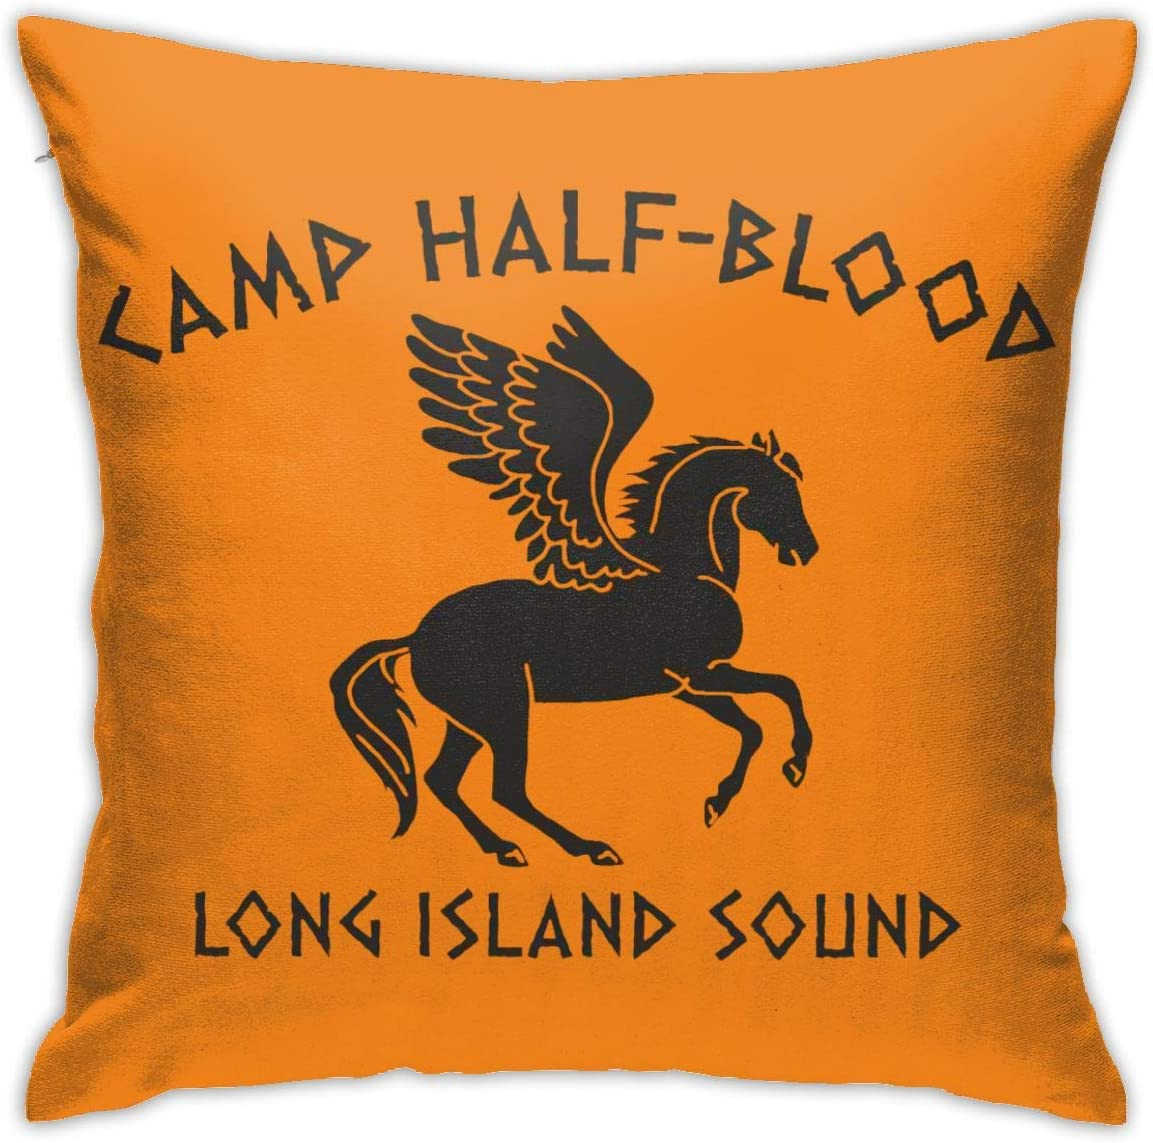 Sonickingmall Camp Half Blood One Size Great Gift Pillow 18inch18inch